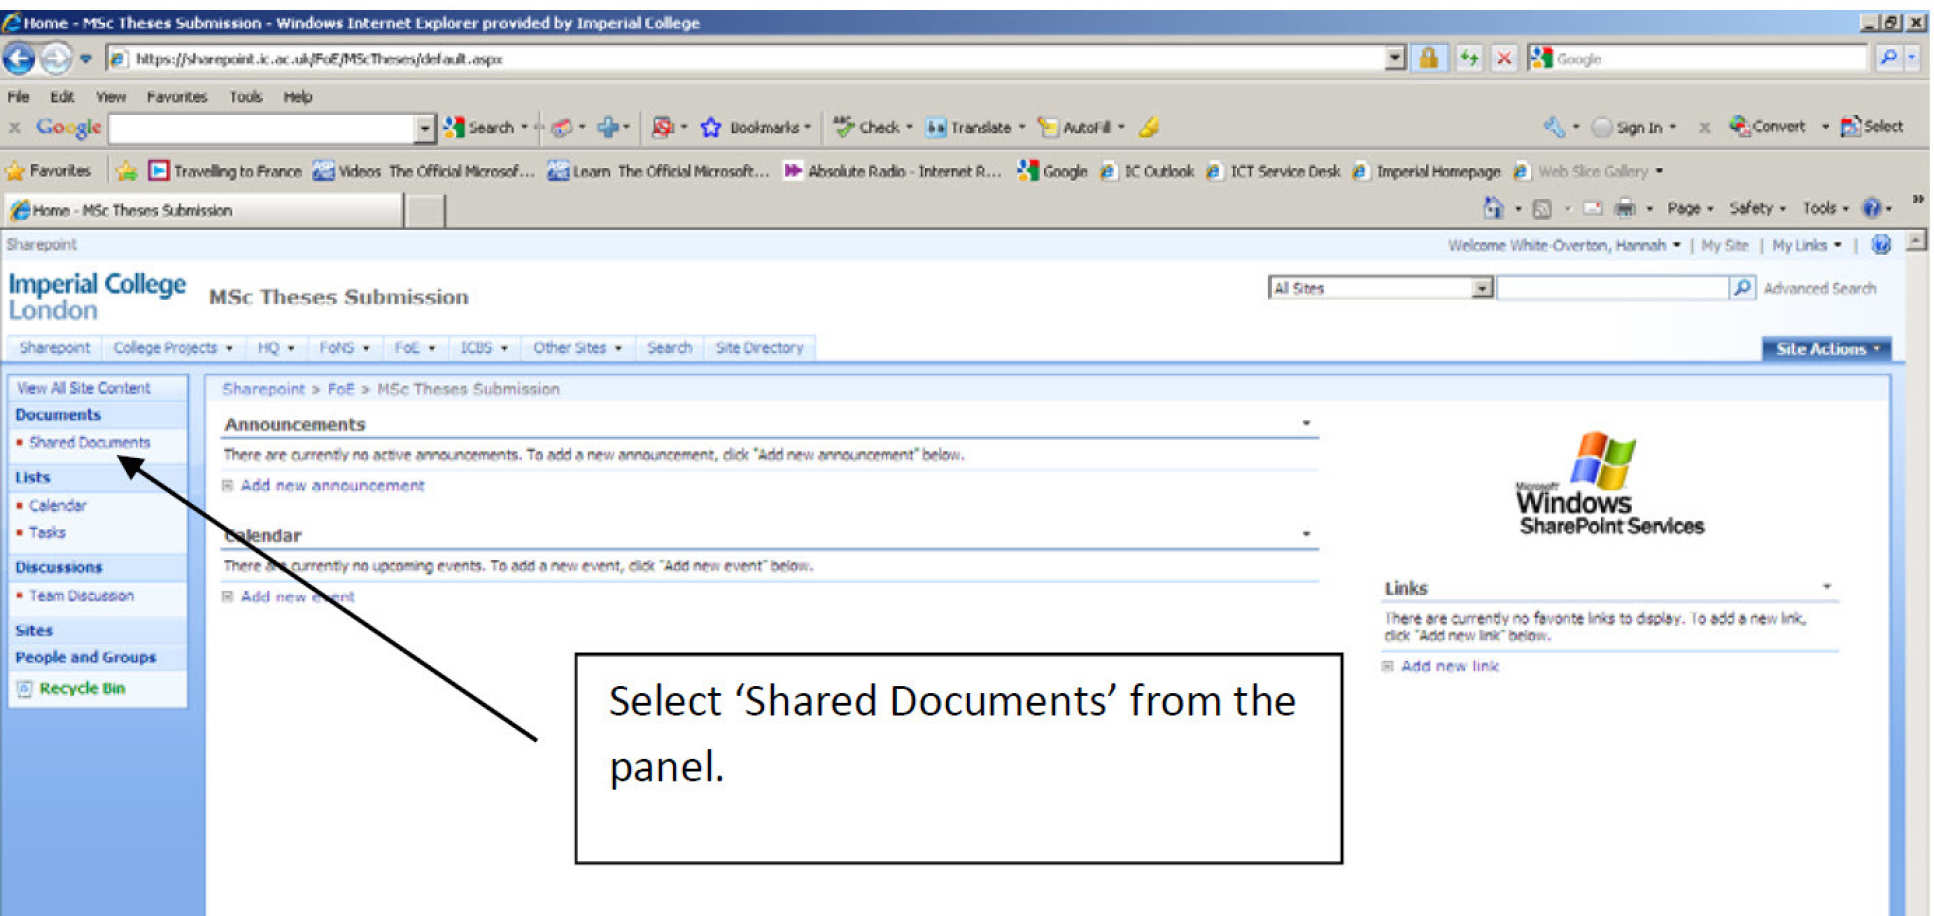 Screen image showing SharePoint